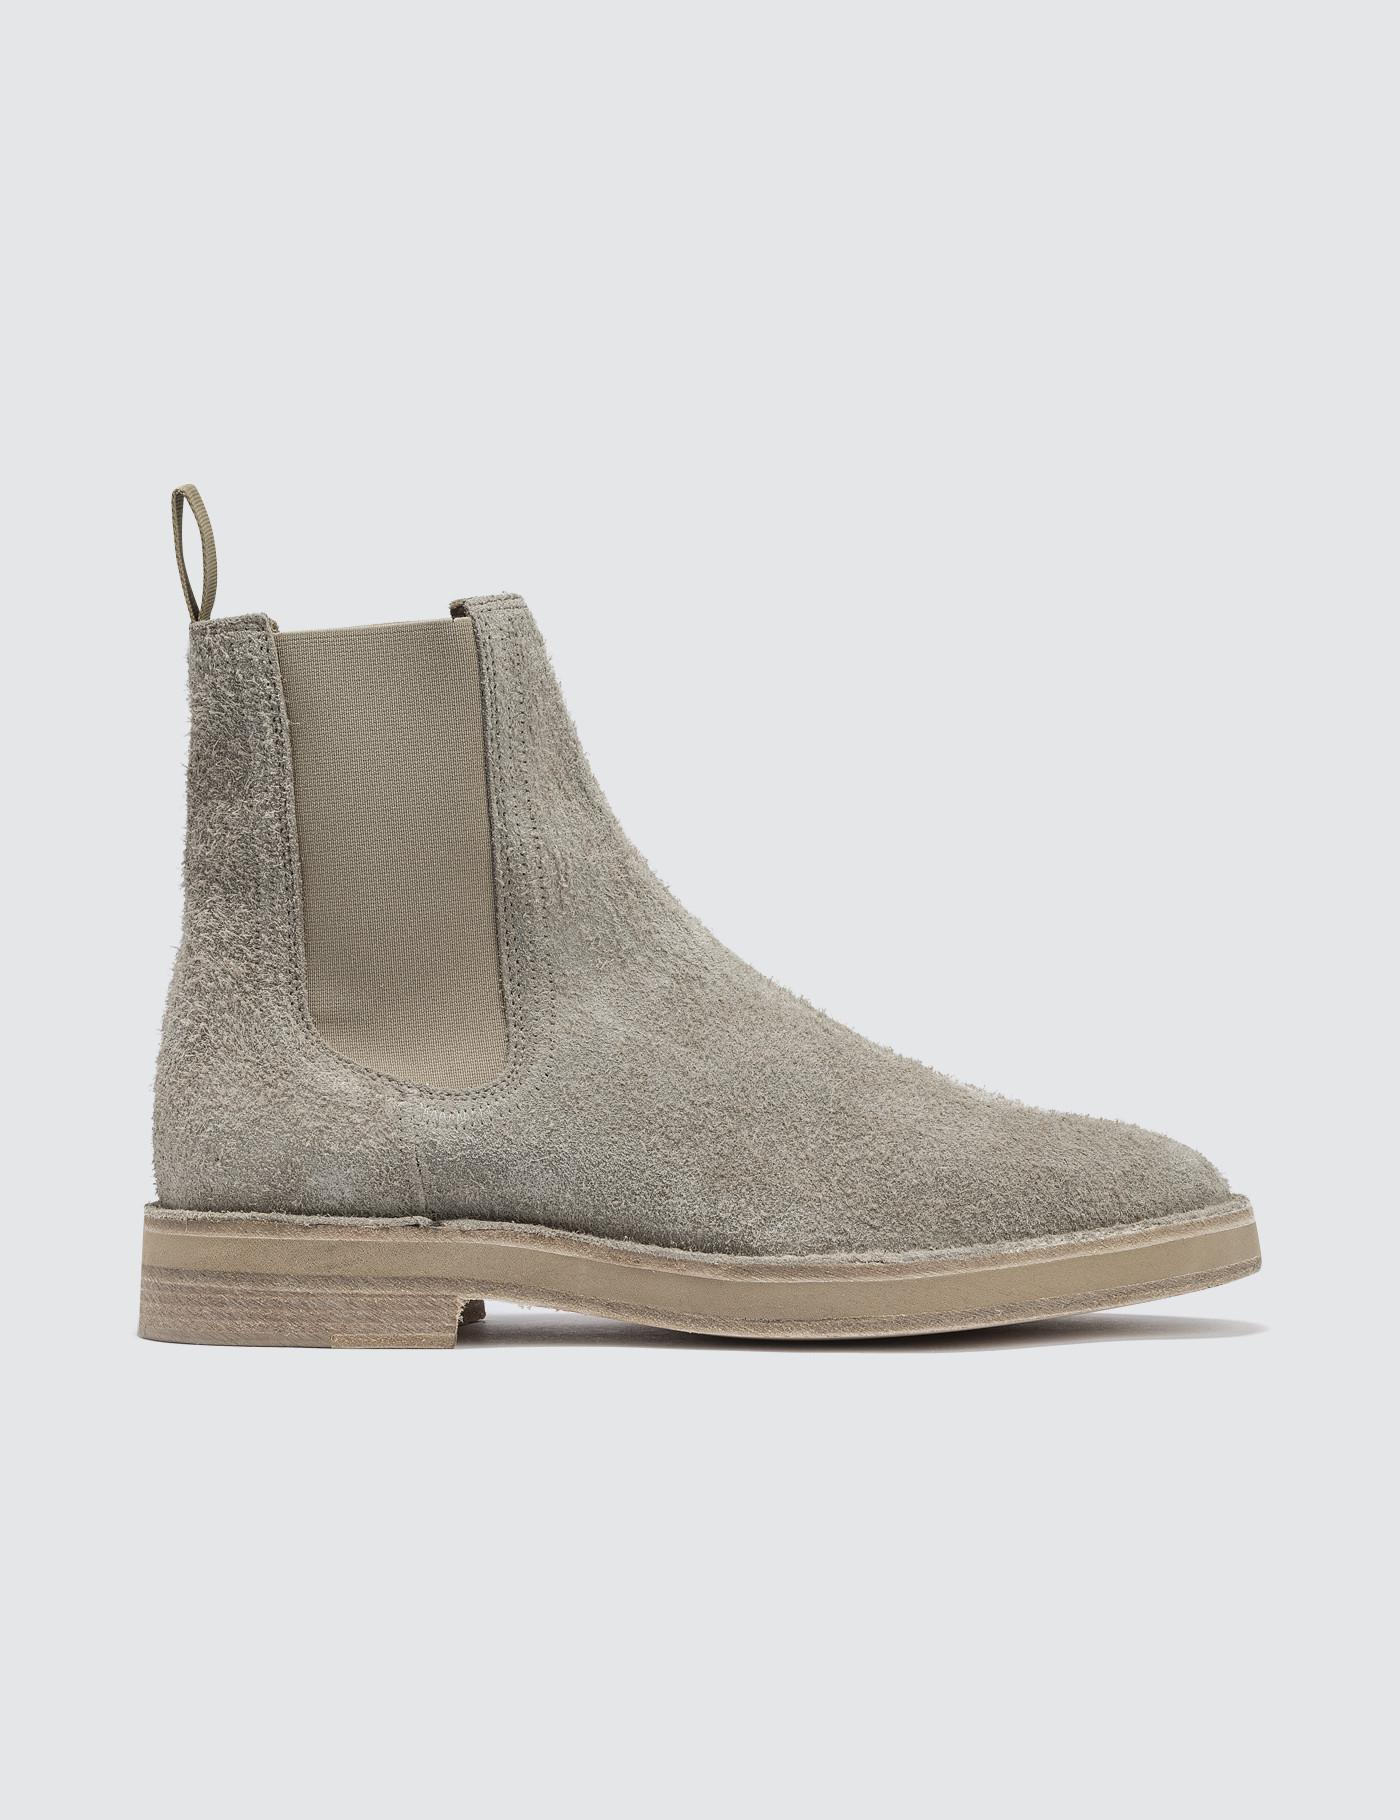 4ed391363ff Lyst - Yeezy Chelsea Boot In Suede for Men